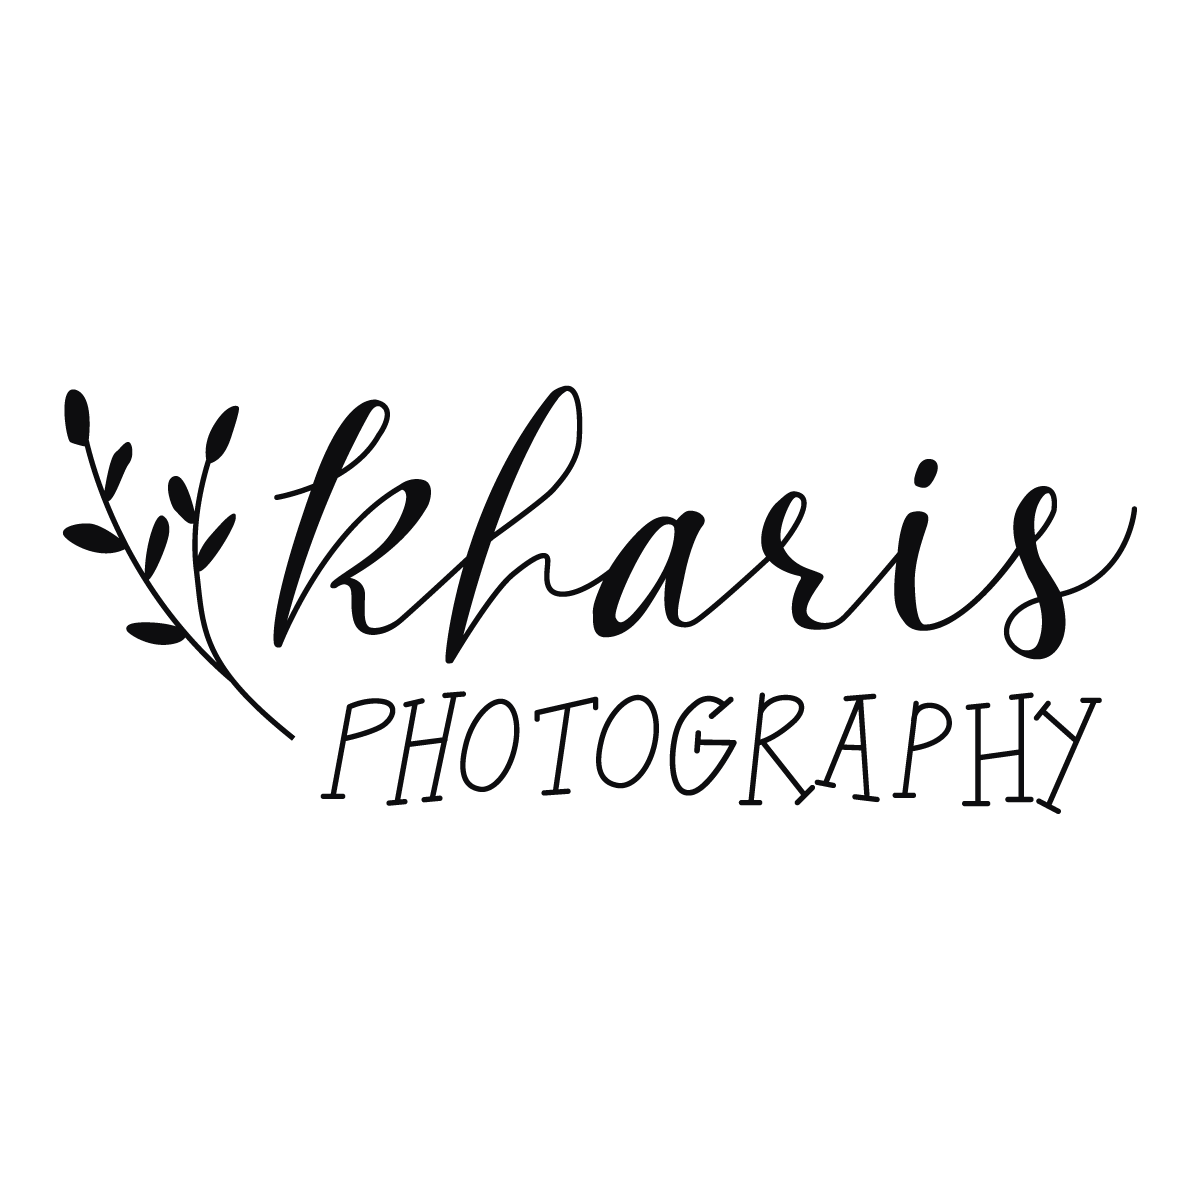 kharis-photography-logo-vector-white-black (1).png